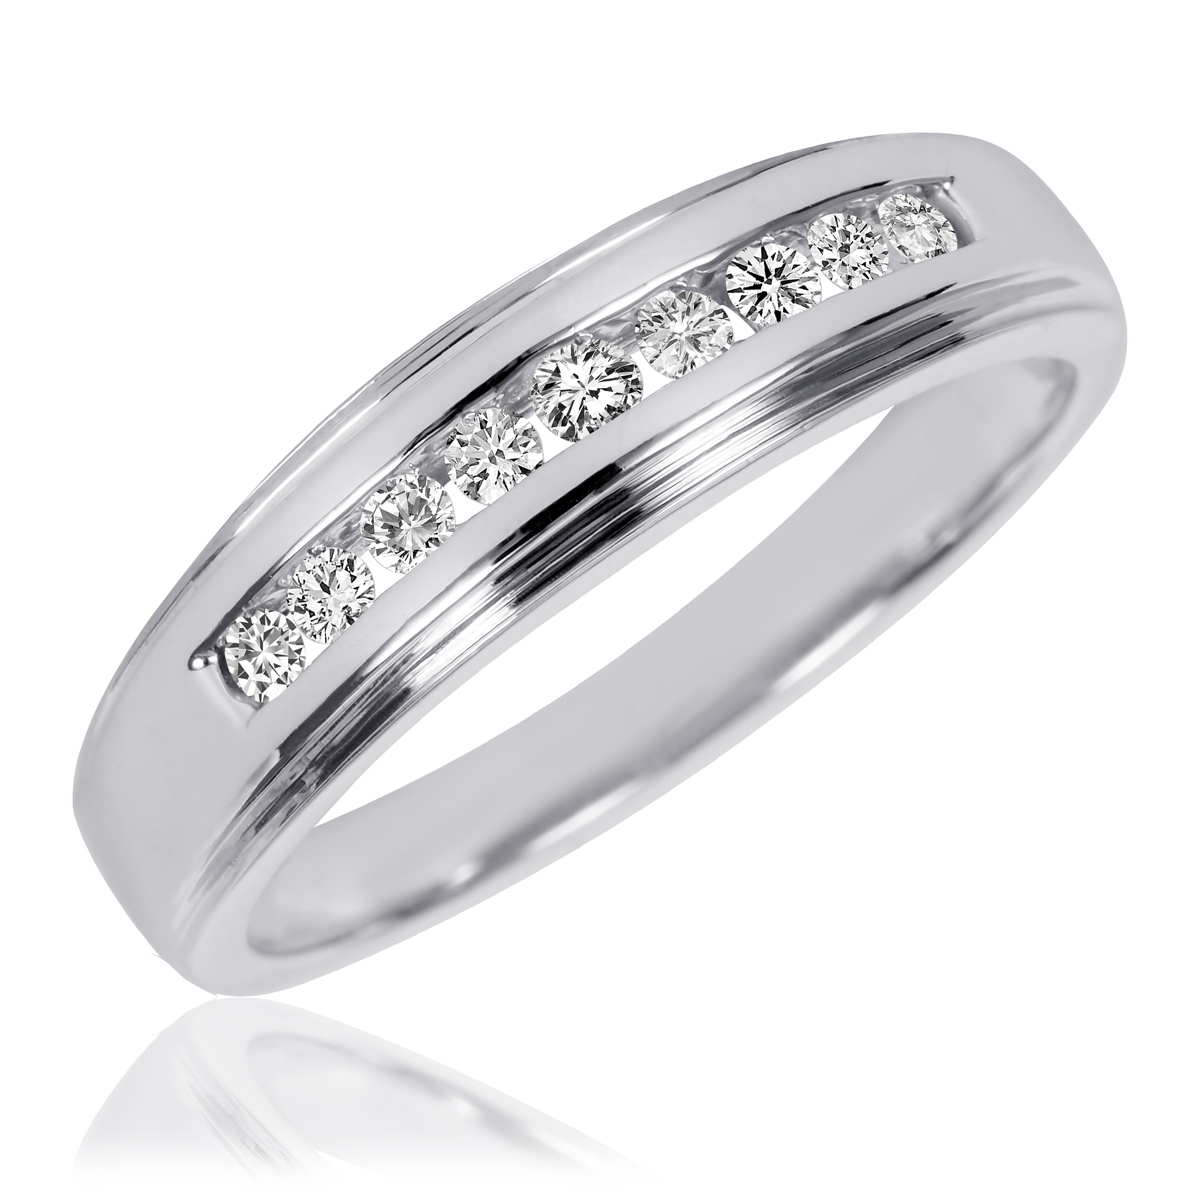 1 5 CT TW Diamond Mens Wedding Ring 10K White Gold